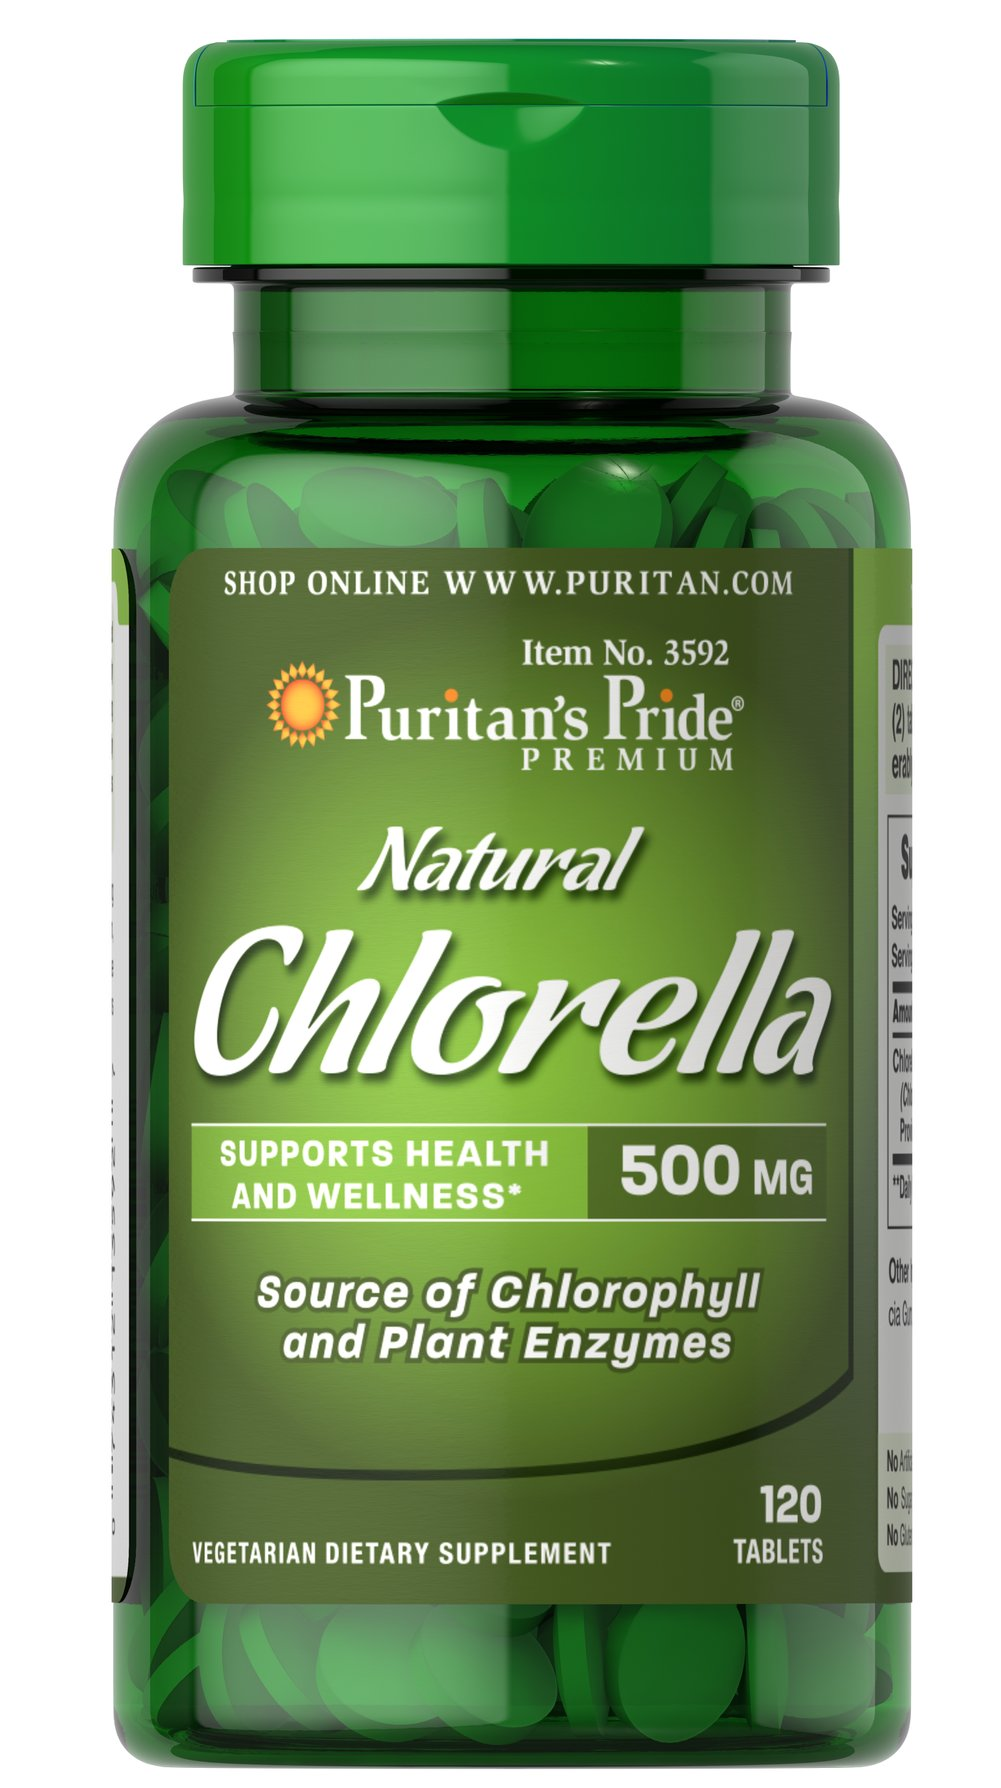 Natural Chlorella 500 mg <p>Health-conscious consumers are getting back to basics and that is one of the reasons that Chinese algae is all the rage. Chlorella is a single-celled green micro-algae that contains the phytonutrient Chlorophyll, the element in plants that captures the sun's rays. Chinese Chlorella is a natural trace source of protein and plant enzymes to support overall health and wellness.** </p> 120 Tablets 500 mg $14.99